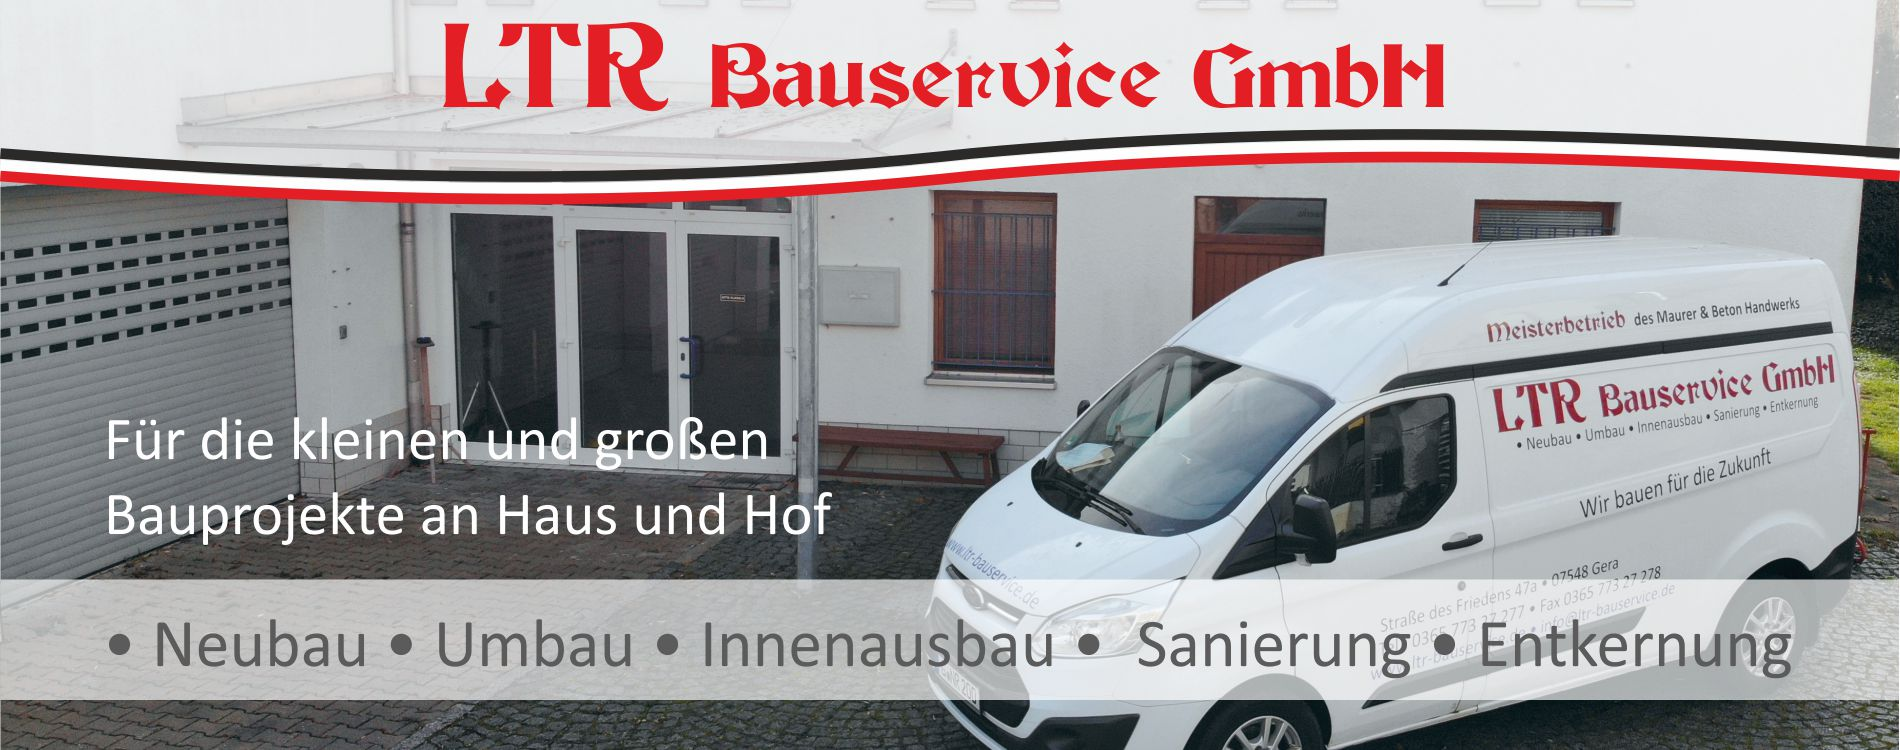 LTR Bauservice GmbH